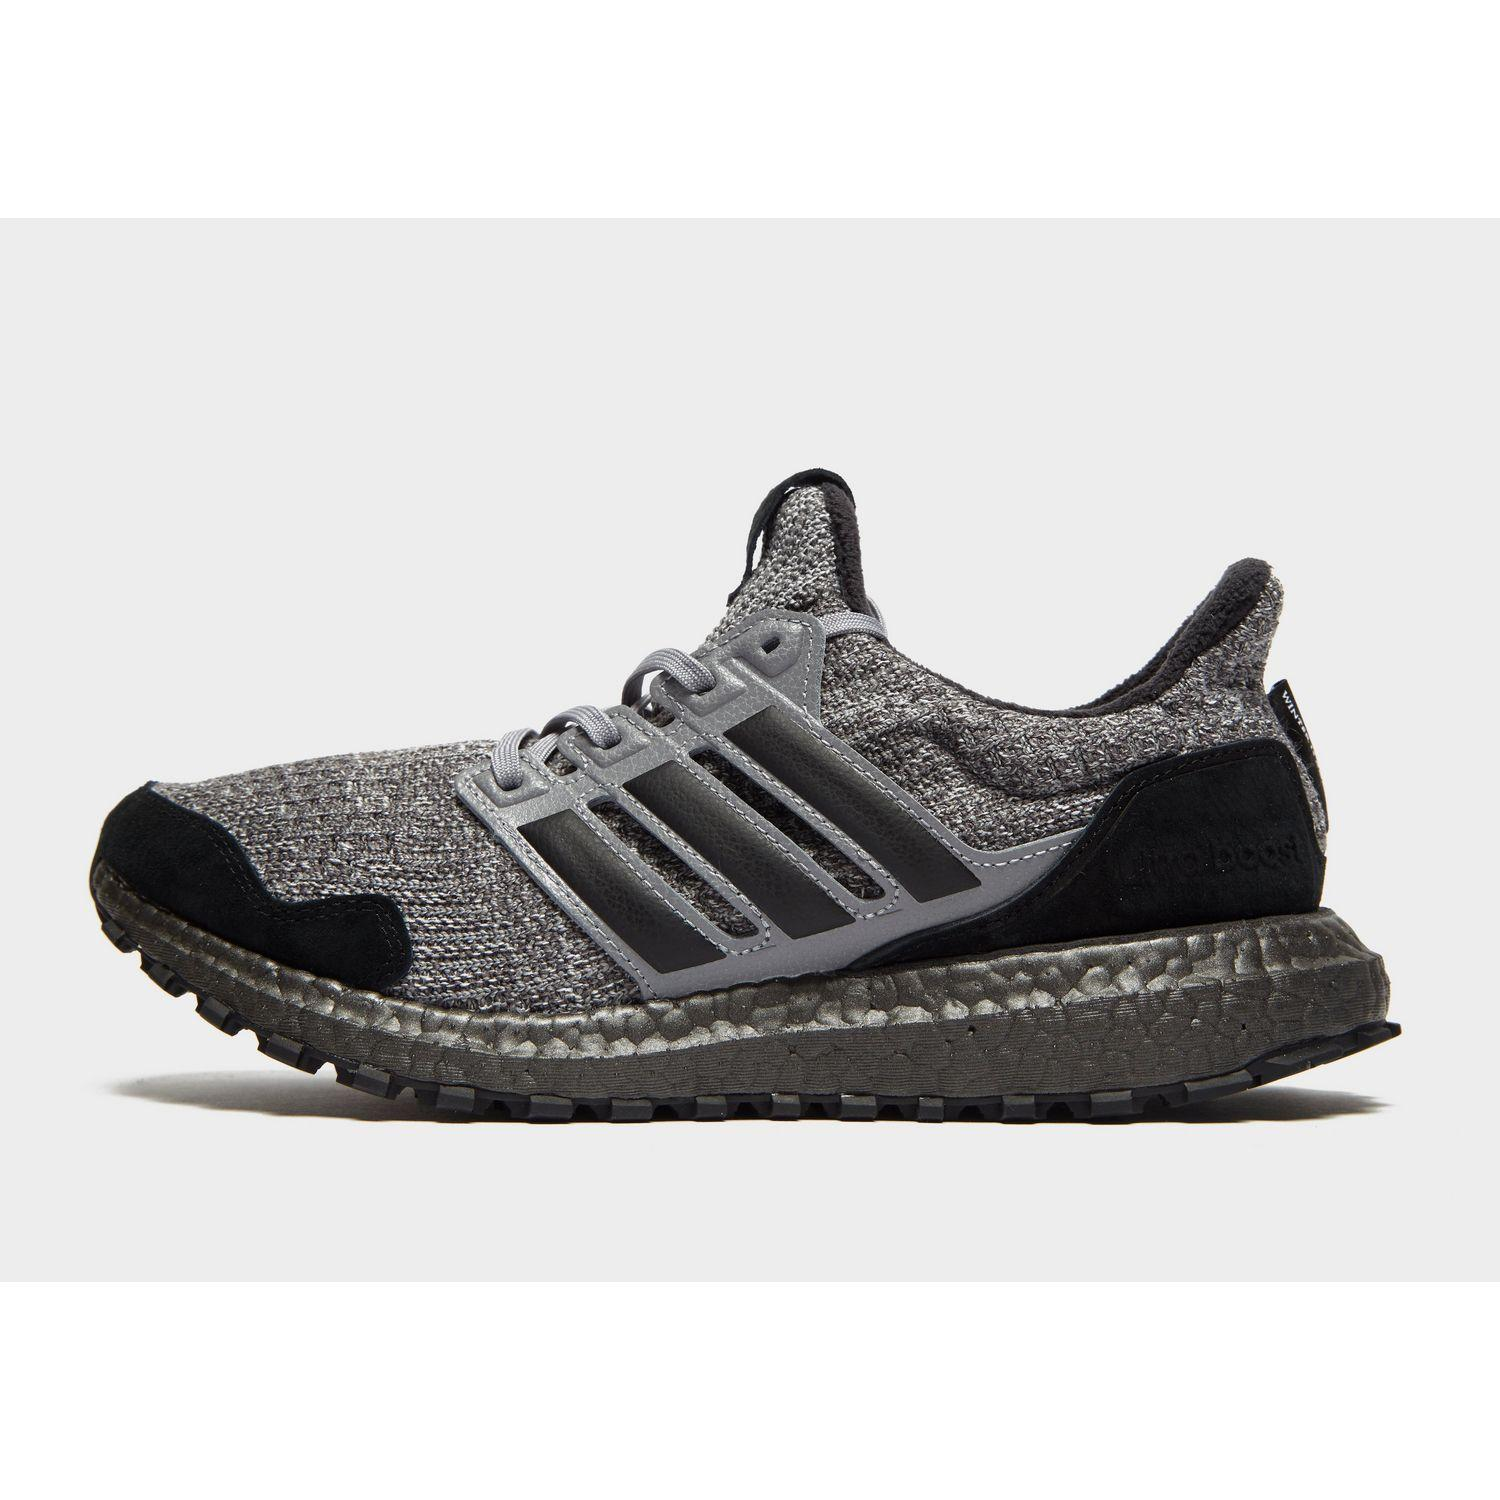 c10c8cb1133 Lyst - adidas Ultraboost X Game Of Thrones Shoes in Black for Men